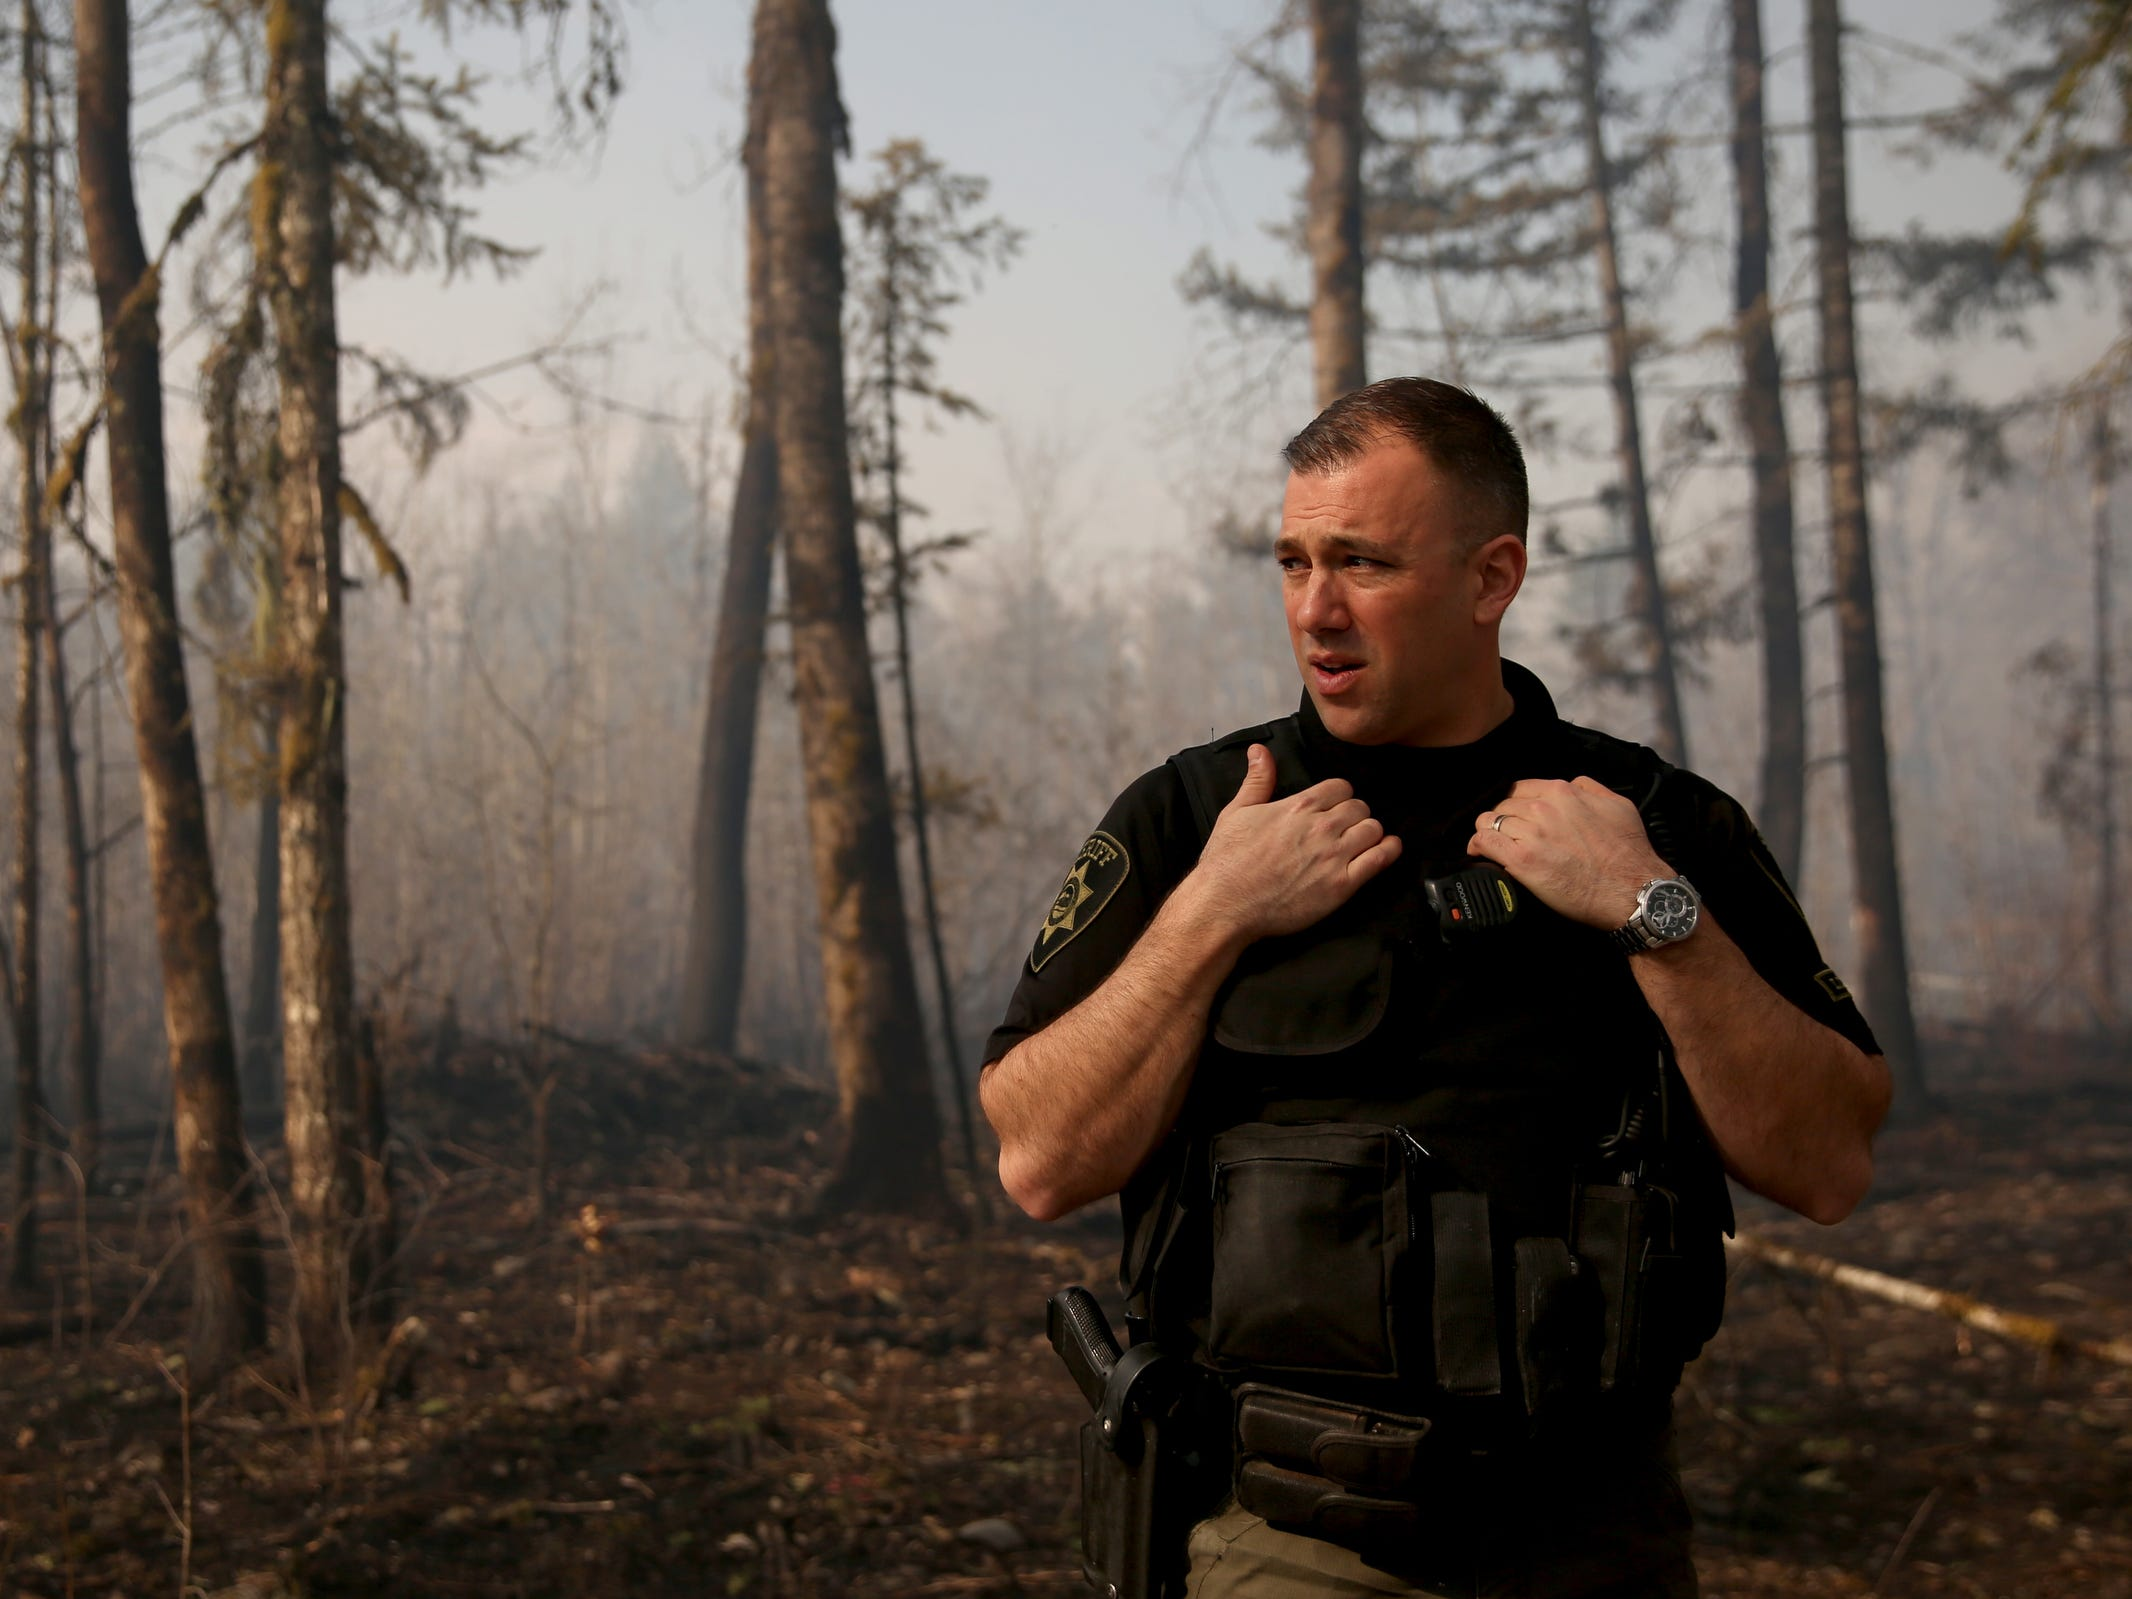 Lt. Chris Baldridge with Marion County Sheriff's Office patrols the North Santiam State Recreation Area as a wildfire that began Tuesday continues to burn in the North Santiam State Recreation Area in near Lyons on March 20, 2019. The fire has forced evacuations in Marion and Linn counties.